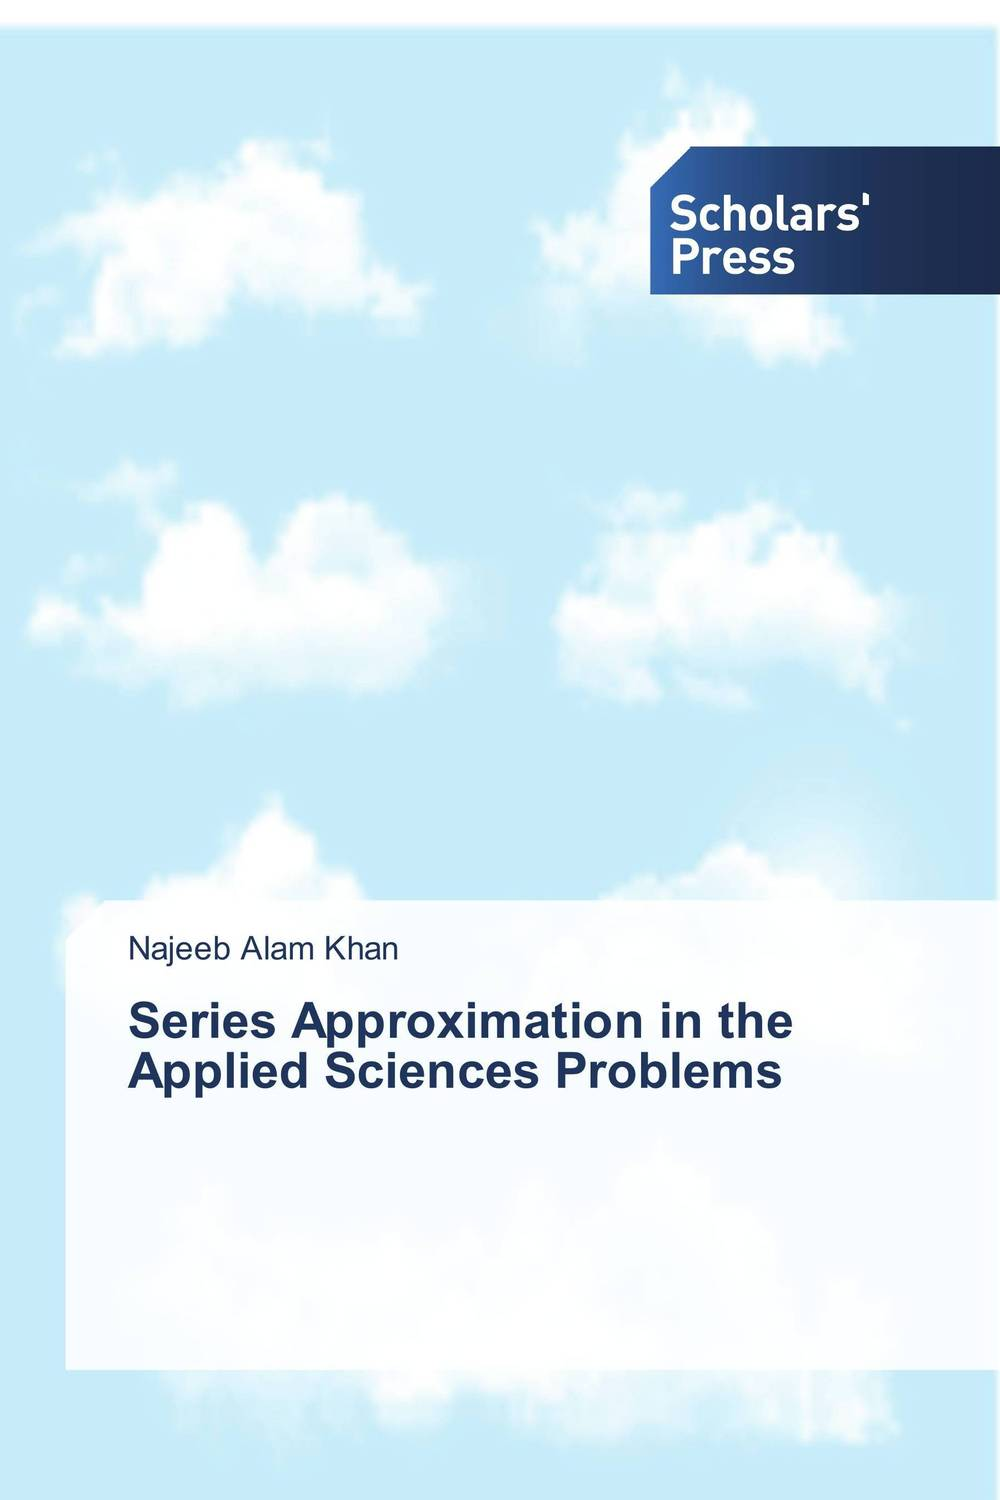 Series Approximation in the Applied Sciences Problems